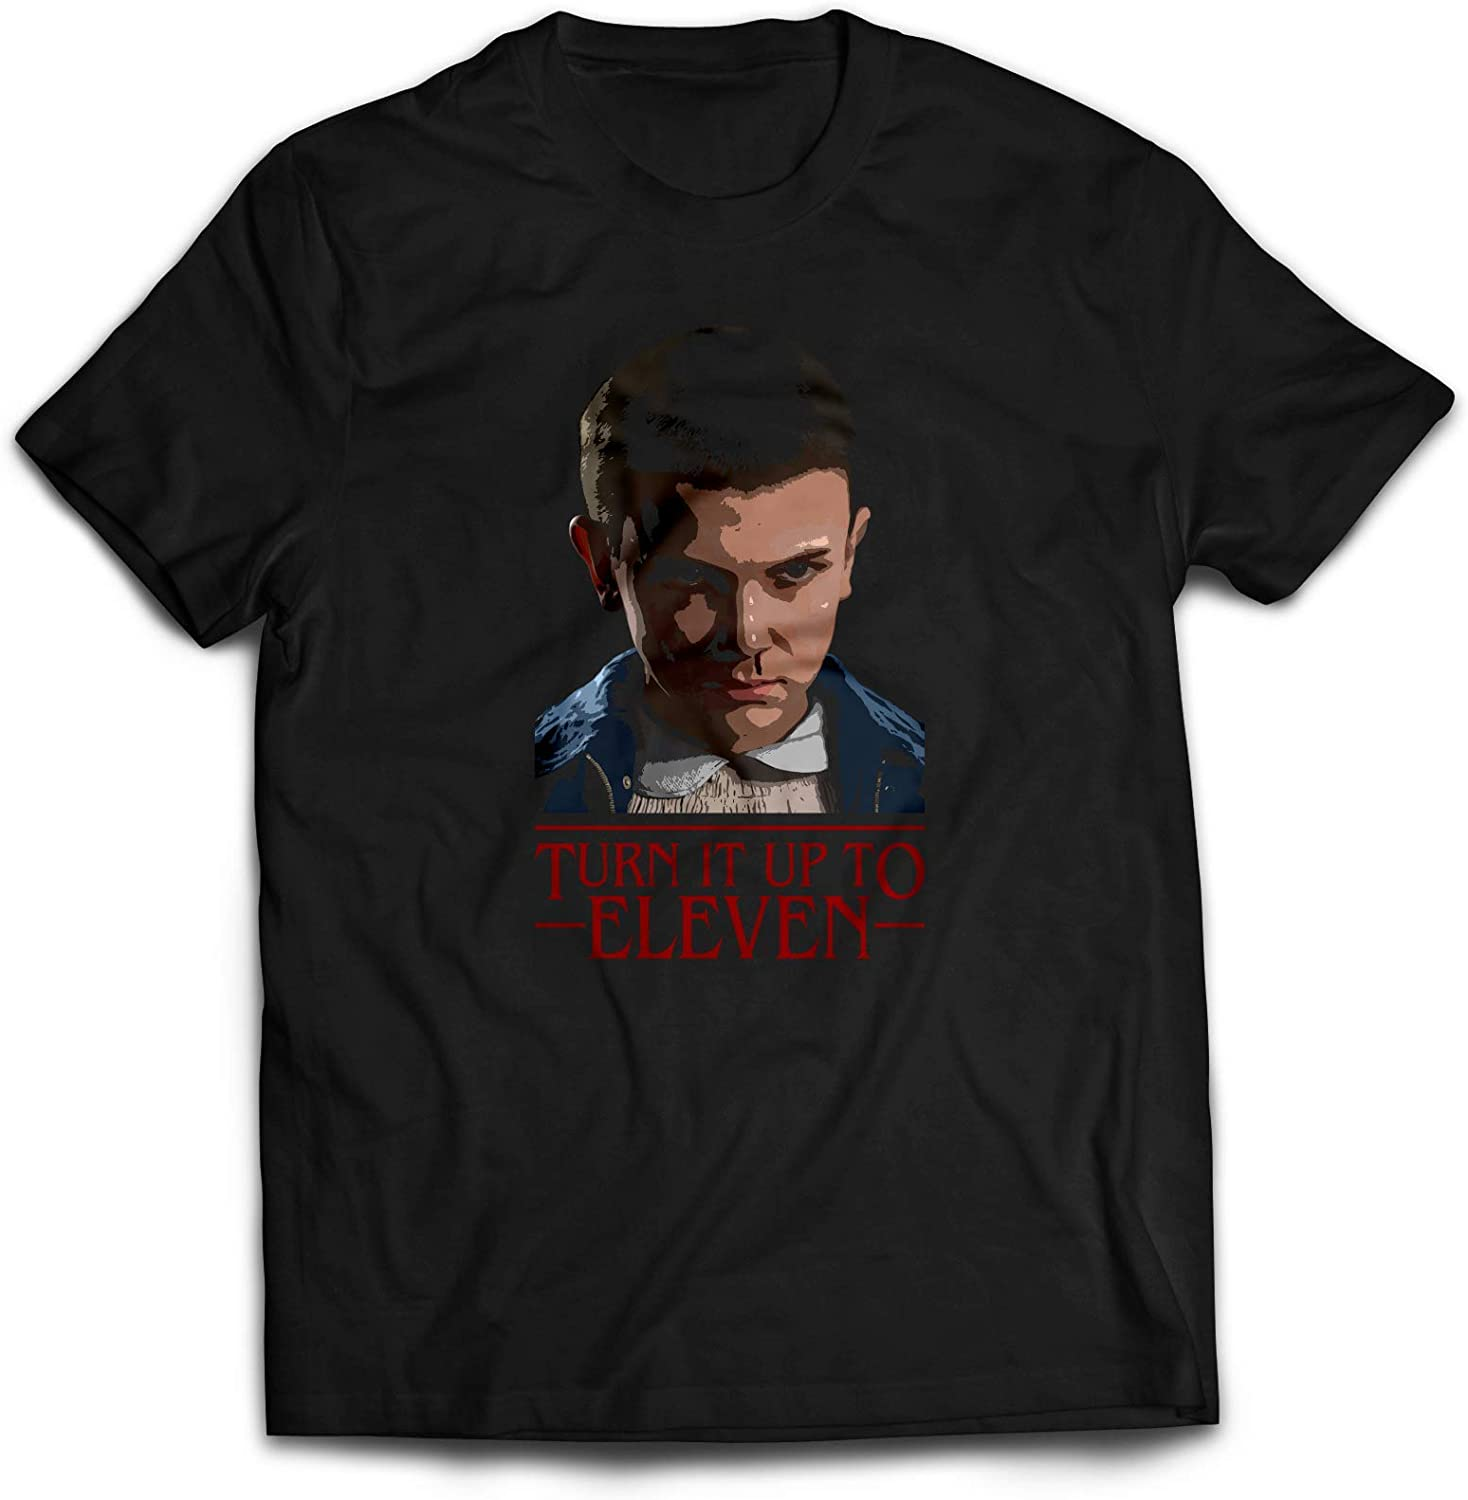 SMARTYPANTS Turn It Up to Eleven - Camiseta Unisex de Sci Fi Things TV Shows Stranger Christmas: Amazon.es: Ropa y accesorios